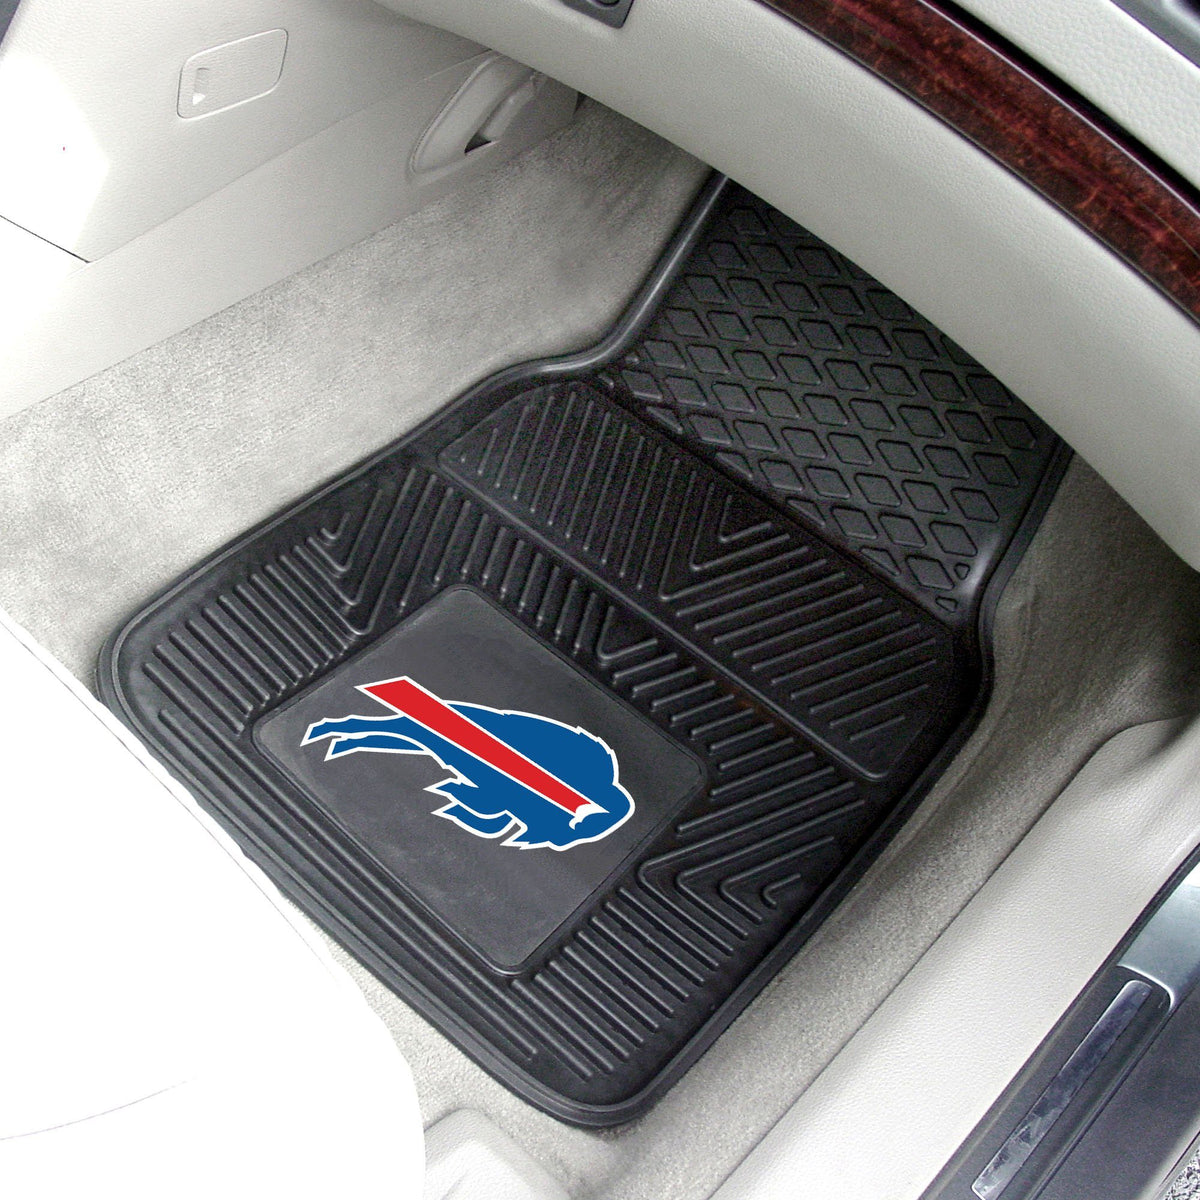 NFL - 2-pc Vinyl Car Mat Set NFL Mats, Front Car Mats, 2-pc Vinyl Car Mat Set, NFL, Auto Fan Mats Buffalo Bills